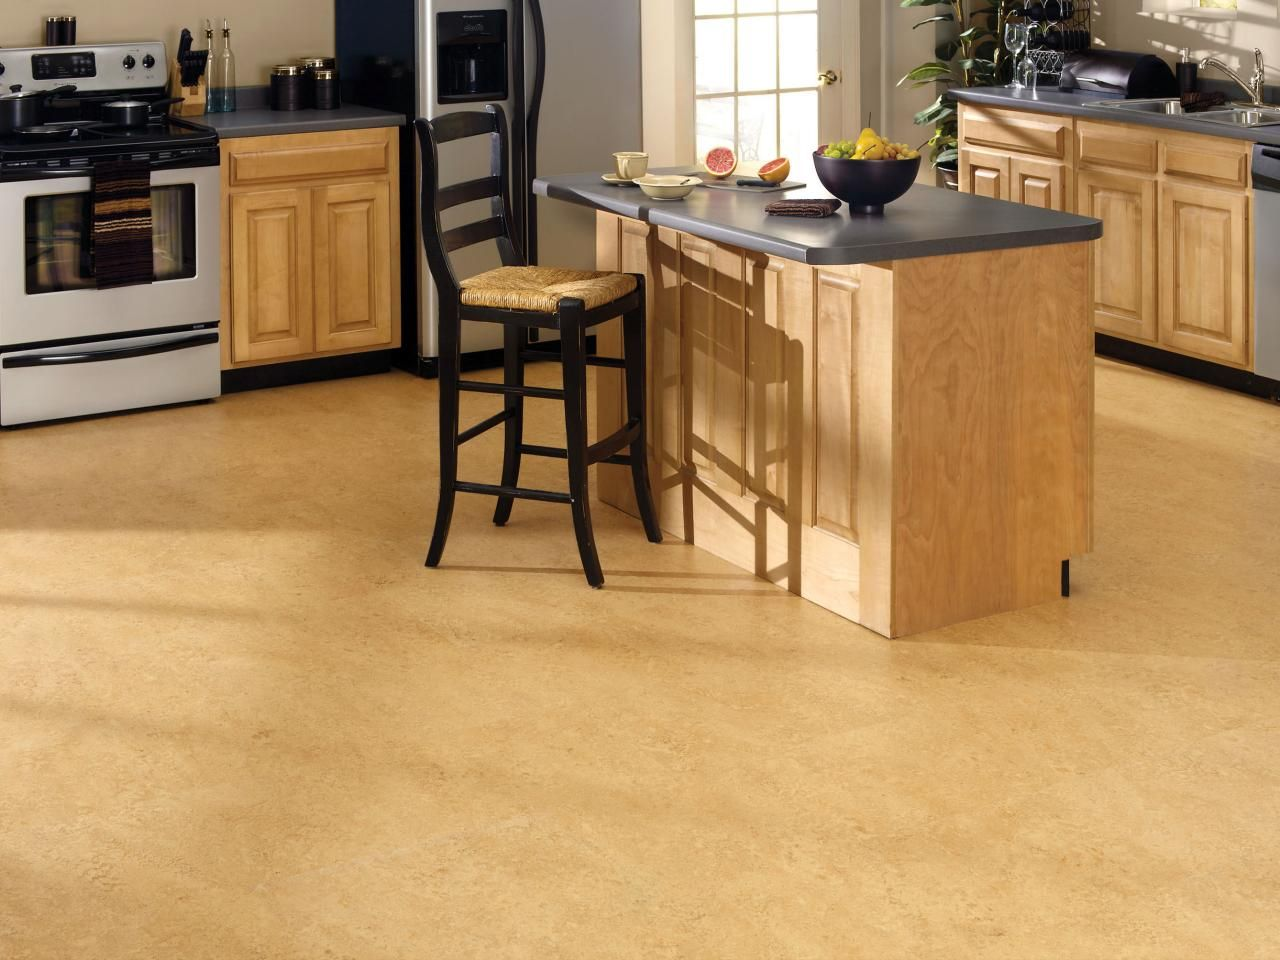 Kitchen Floor Materials Corkoleum Flooring Is An Eco Friendly Linoleum Made From Non Toxic